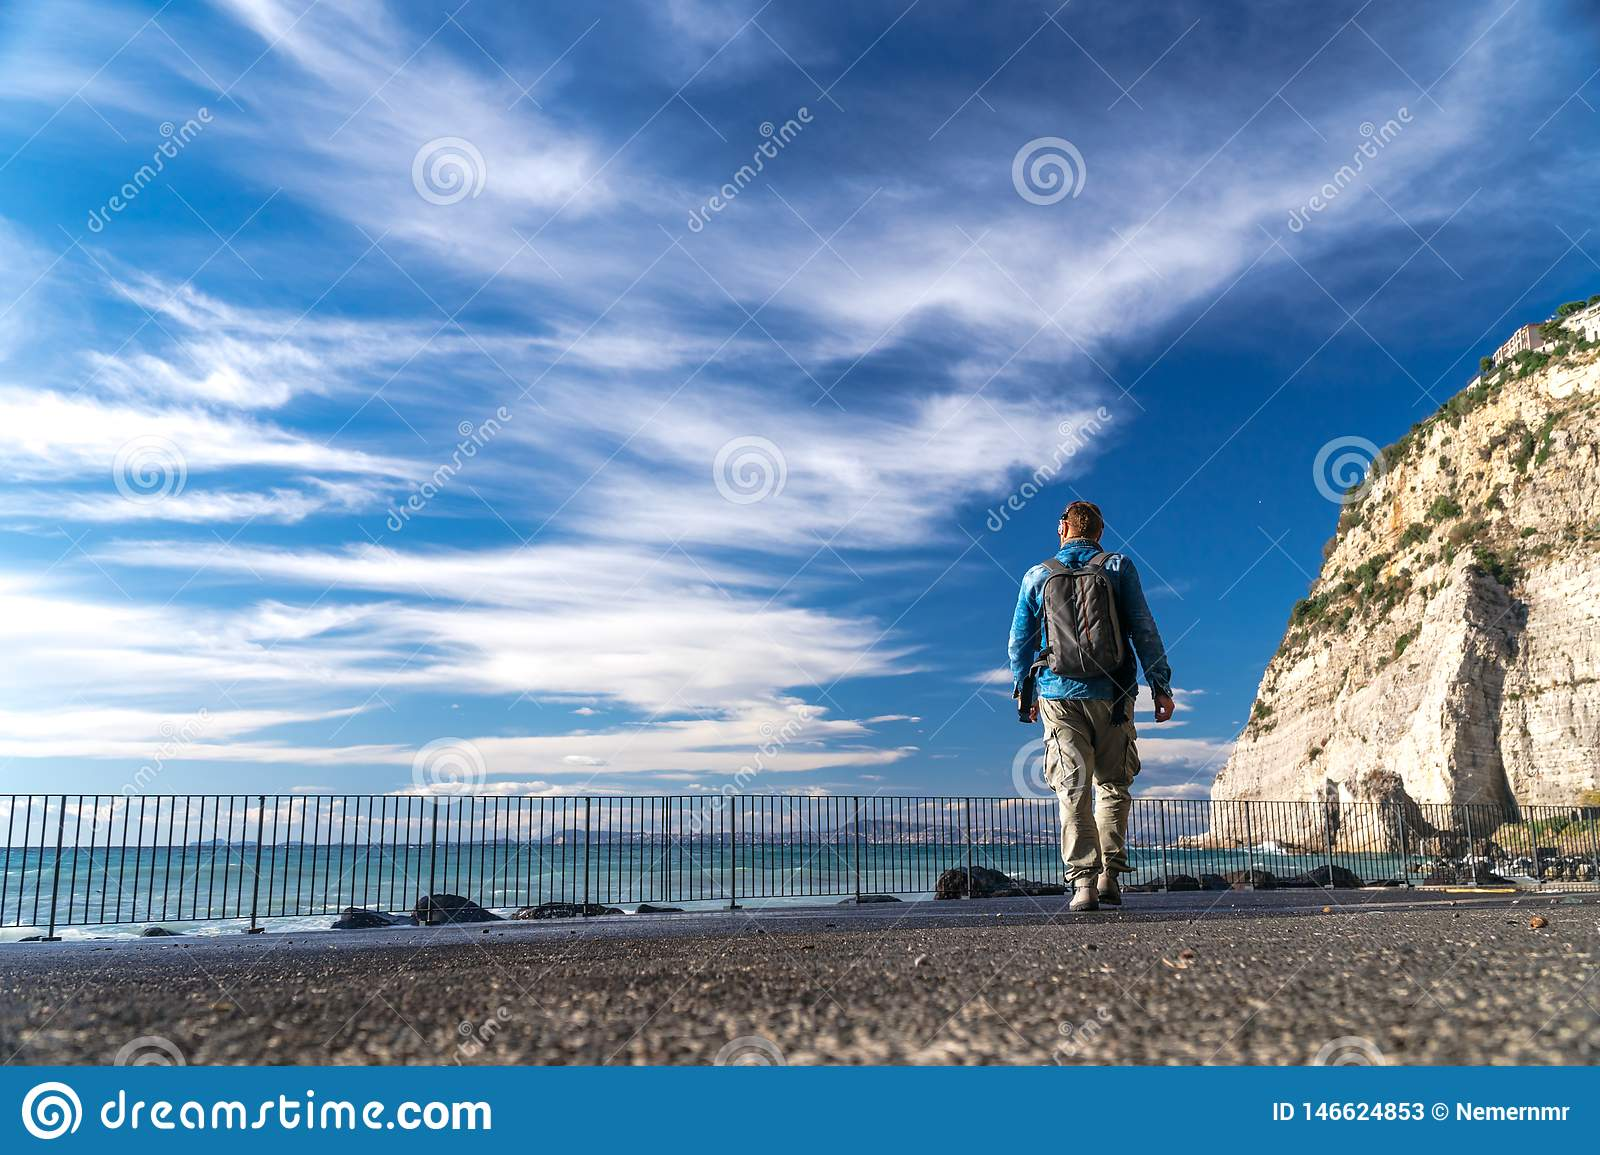 Man with backpack walk alone and watching on the water strong waves, clouds and mountains bacground, Sorrento Italy